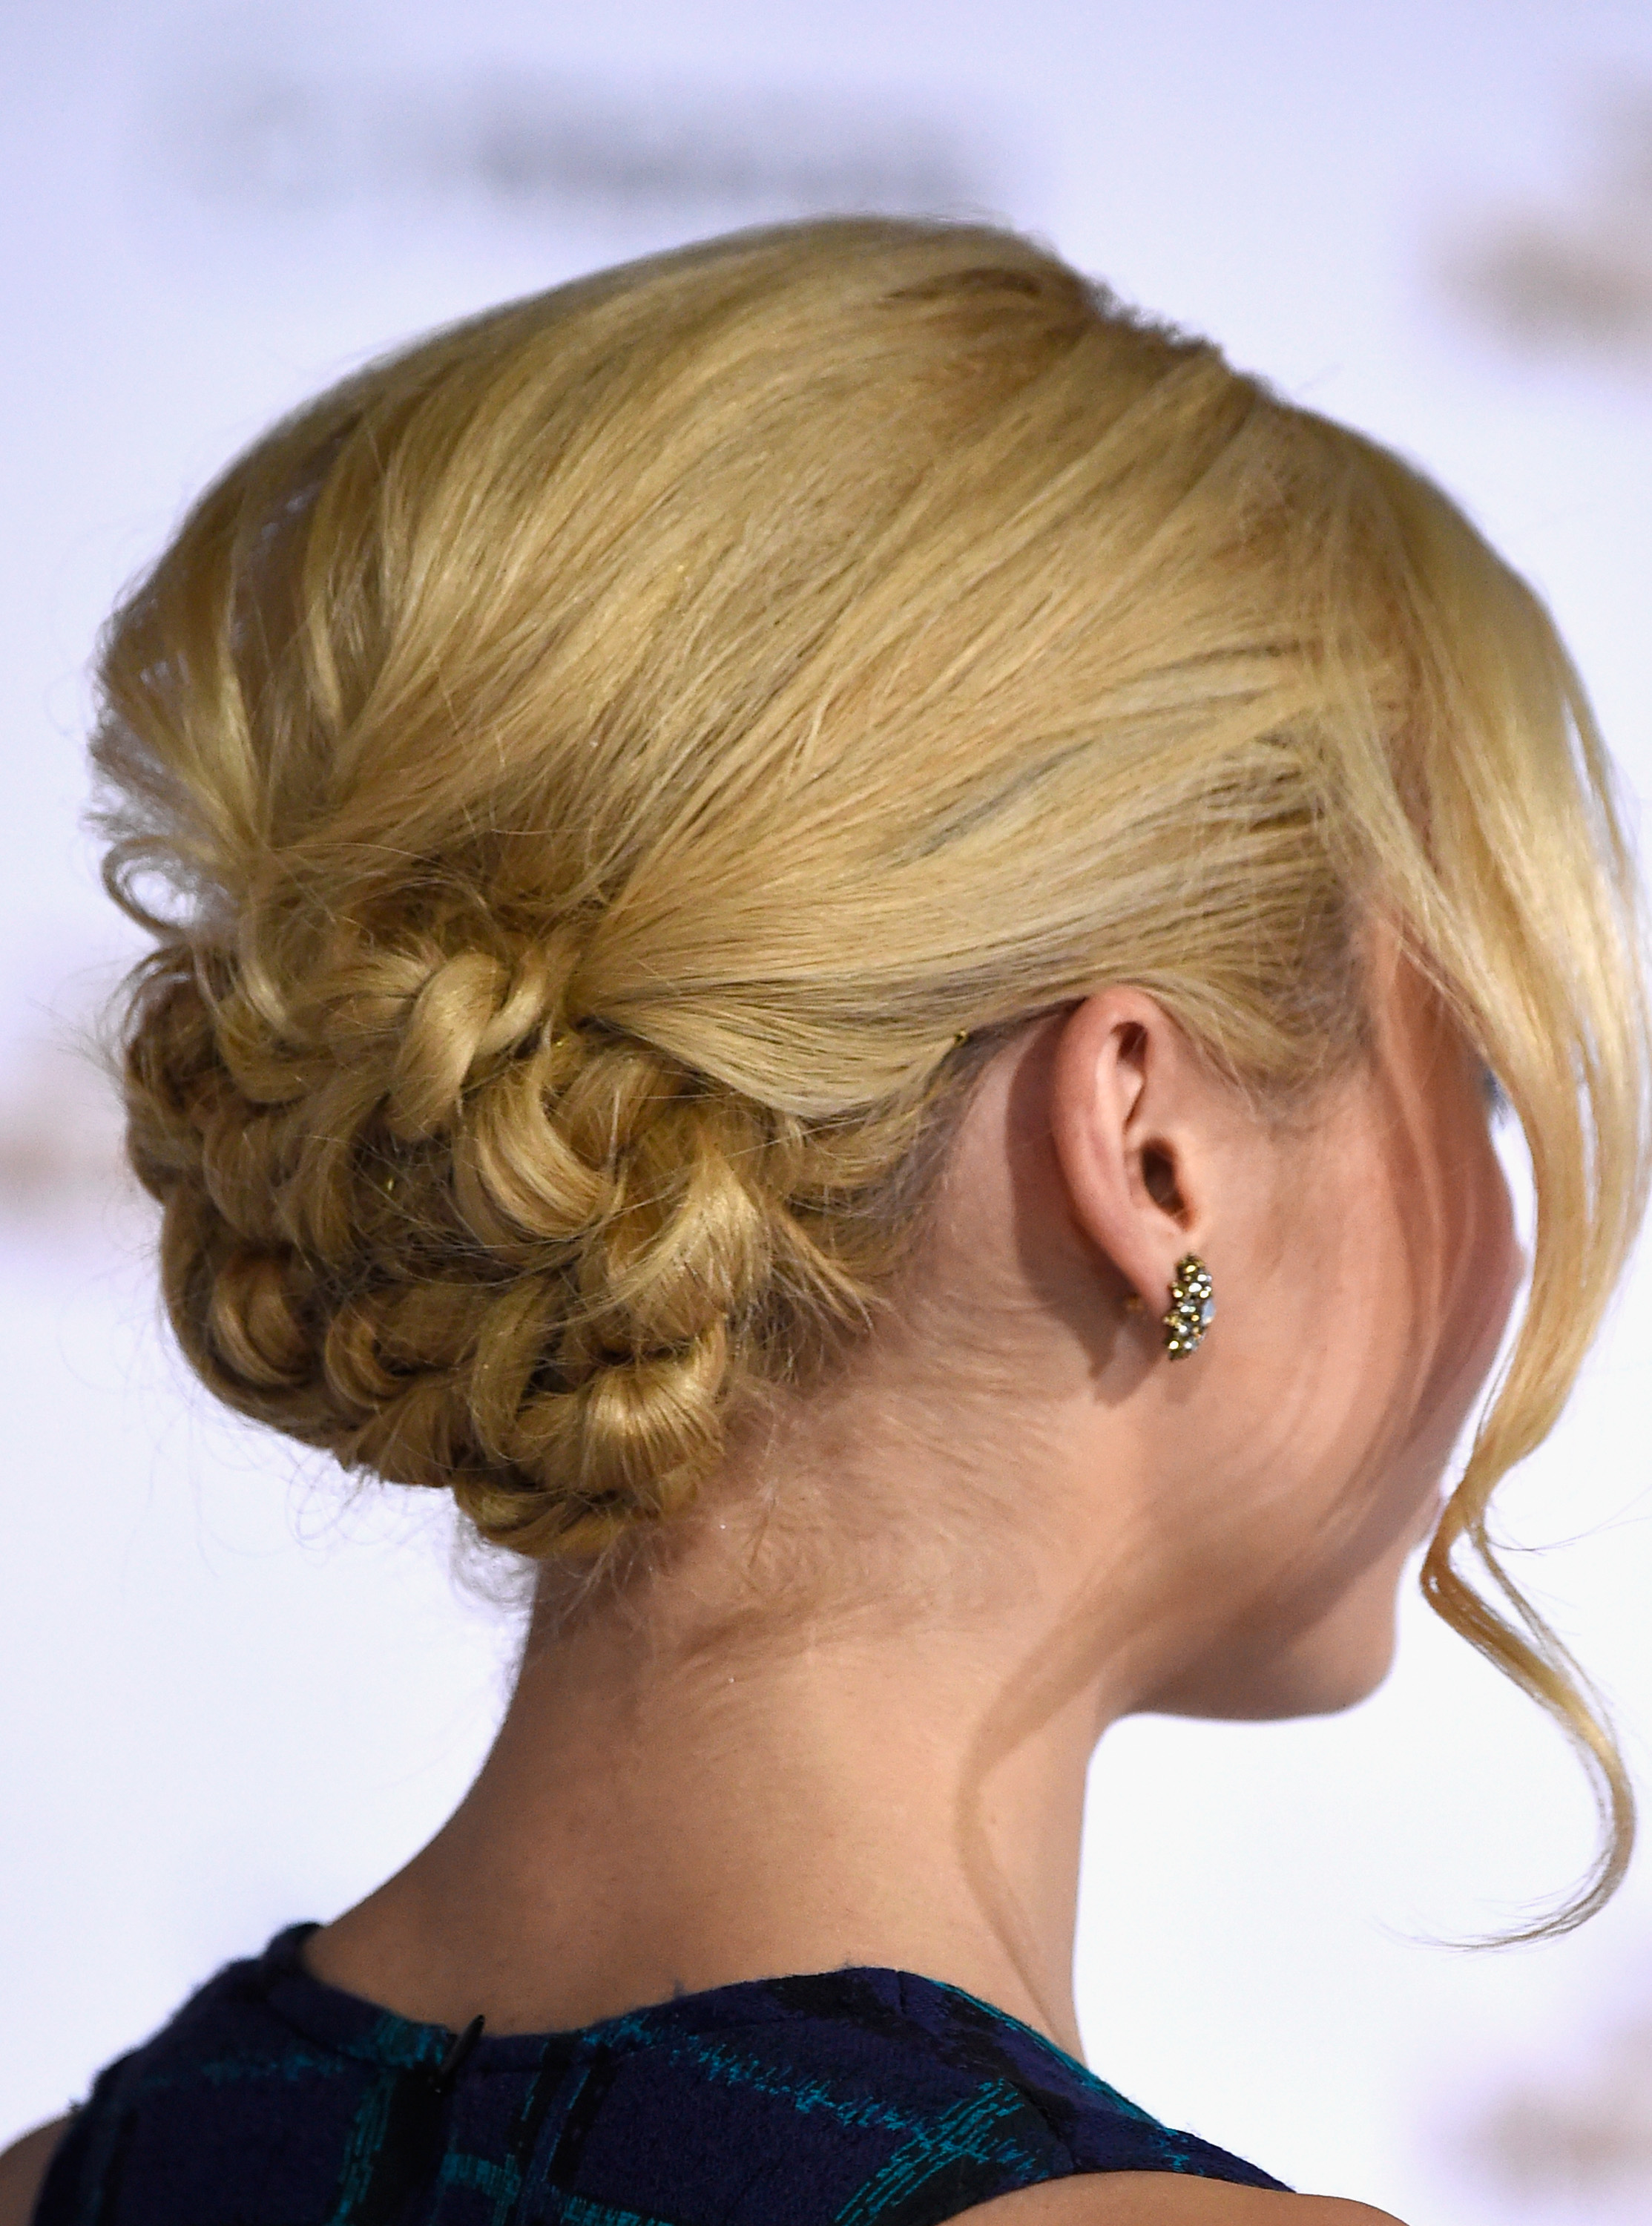 Pleasing 60 Braided Hairstyles Braids Inspiration Amp How To39S Short Hairstyles For Black Women Fulllsitofus